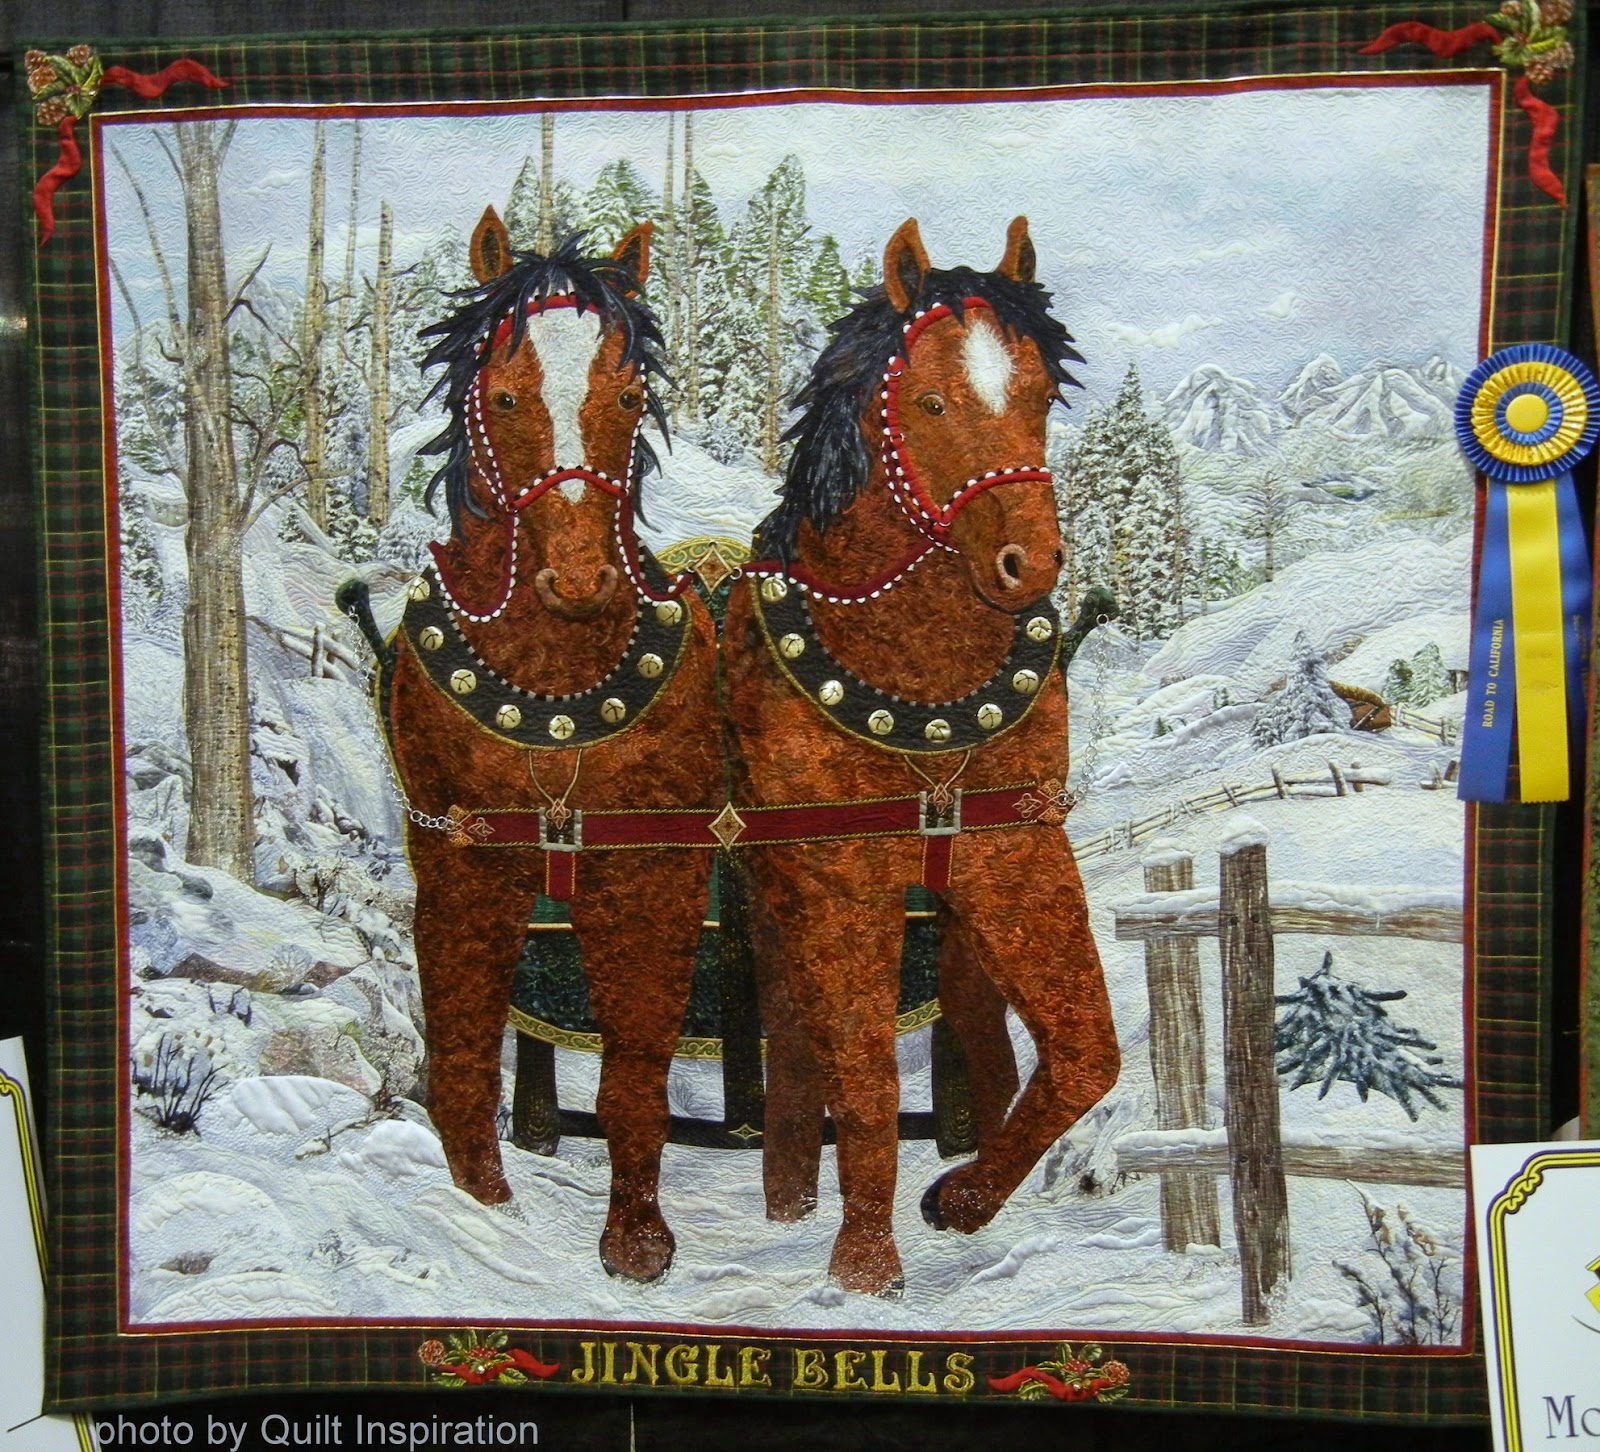 Quilt Inspiration: Happy (quilted) Holidays! The Best of Christmas ... : california quilt shows - Adamdwight.com